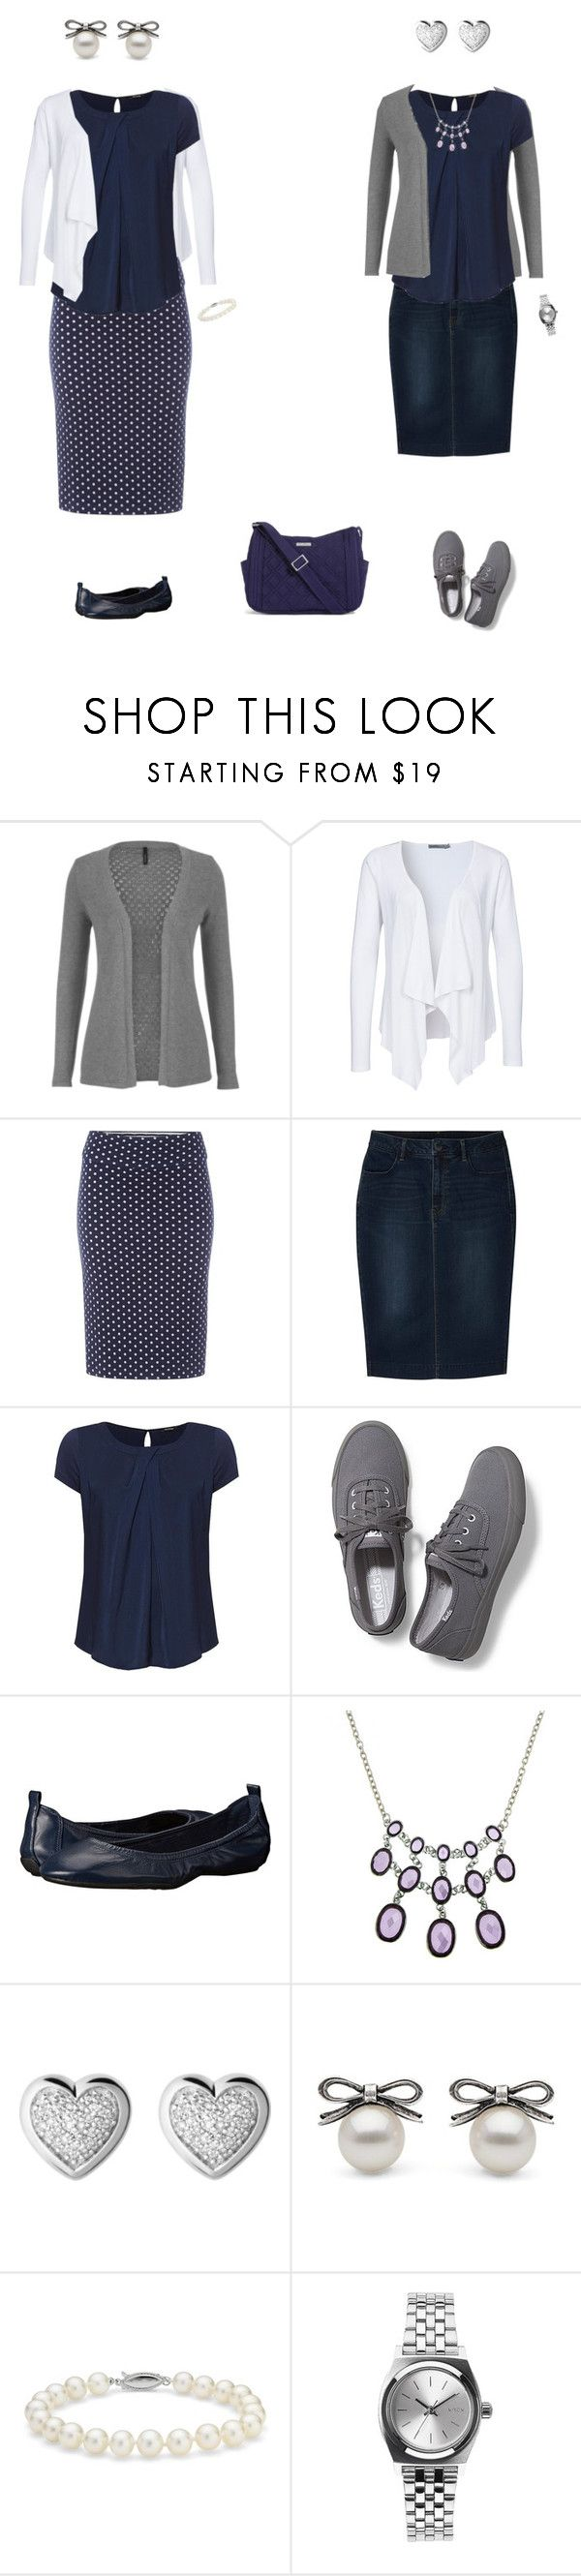 """Pleated navy blouse set 1"" by tracy-gowen ❤ liked on Polyvore featuring maurices, Soaked in Luxury, White Stuff, Uniqlo, Keds, Cole Haan, 1928, Links of London, Blue Nile and Nixon"